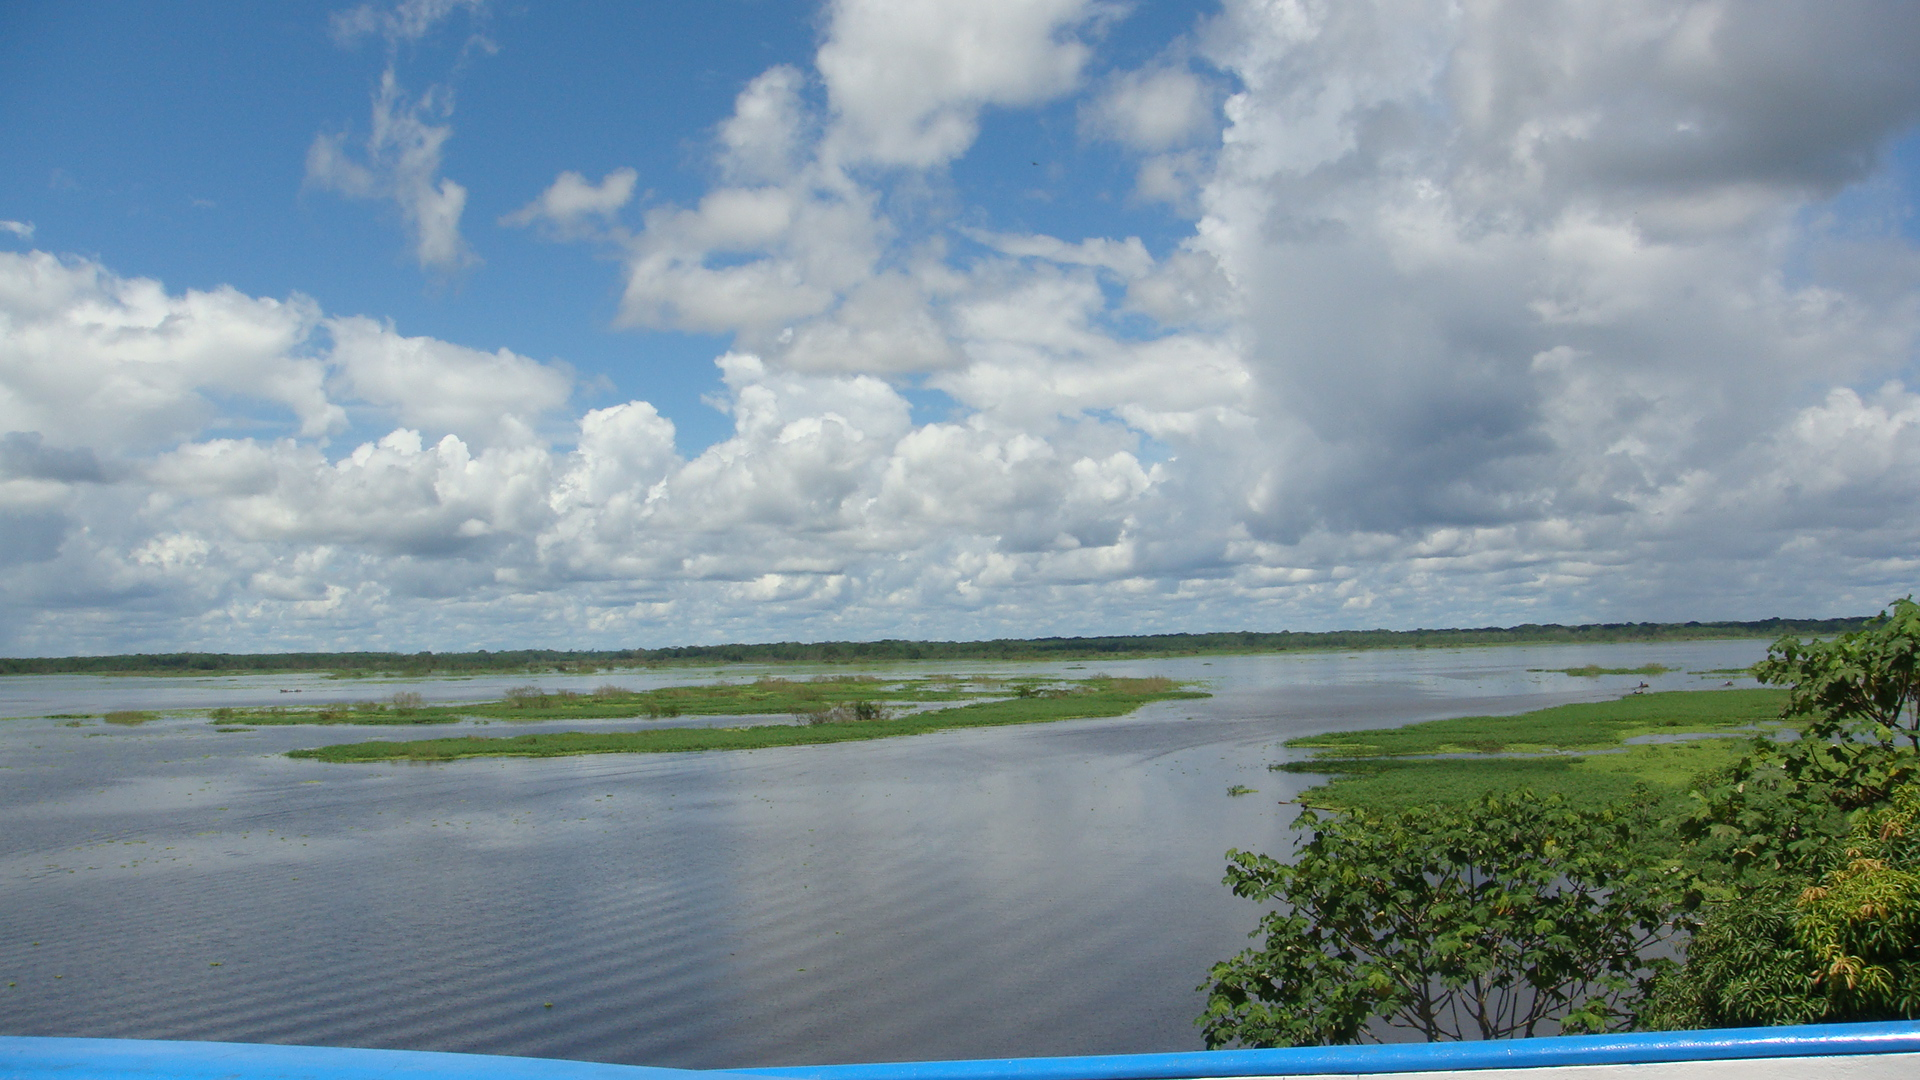 Amazon River Hd Wallpaper Iquitos Gateway To The Amazon Welcome To Amazonian Trips